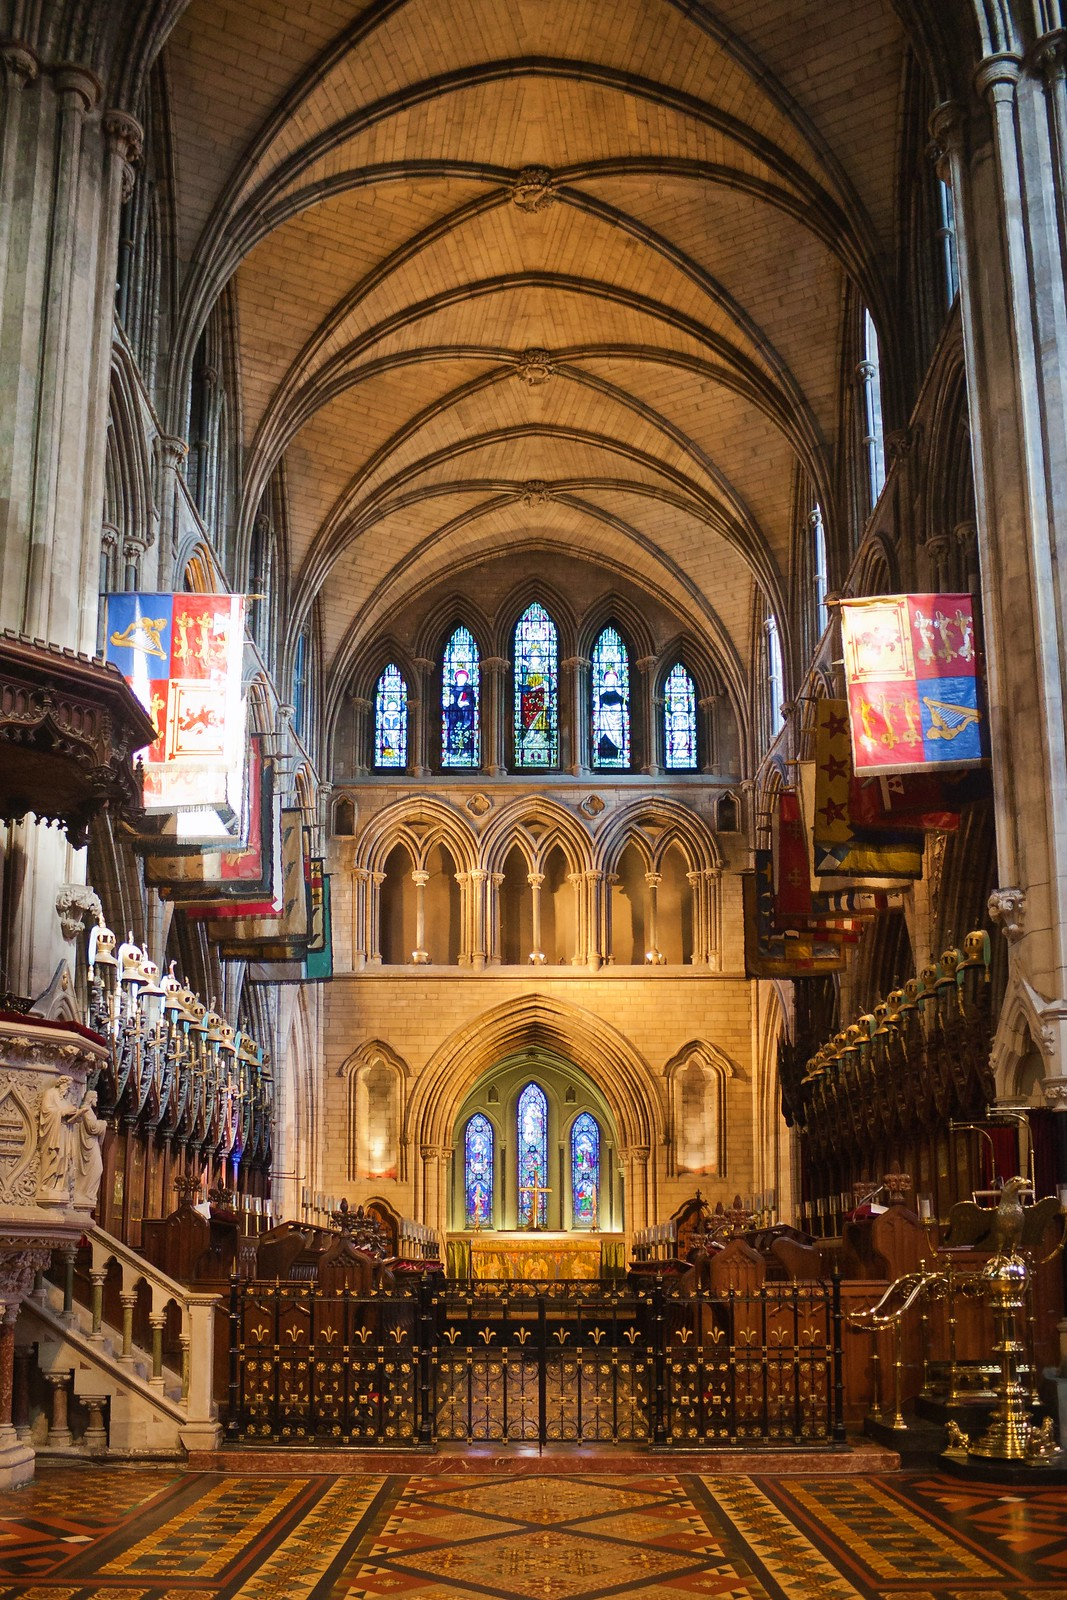 St. Patrick's Cathedral Choir as seen from the Nave. Credit Andreas F. Borchert